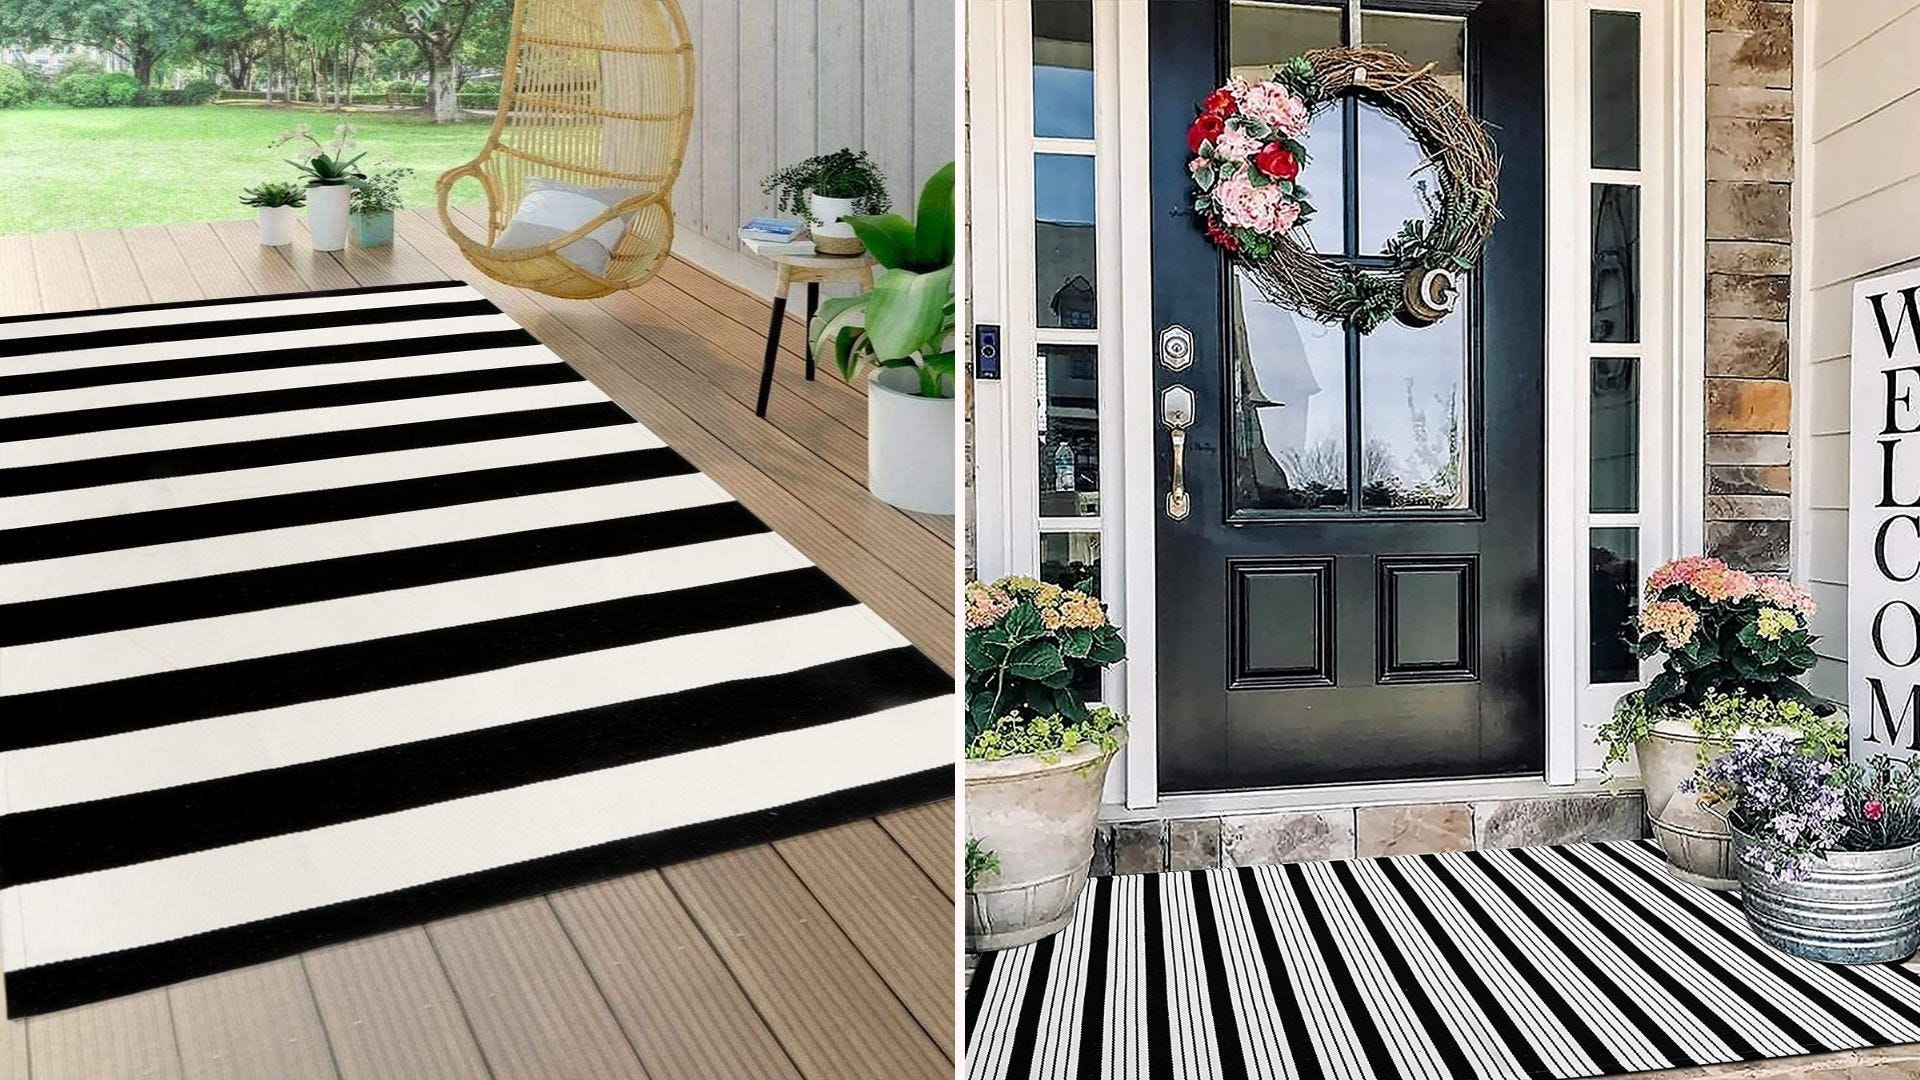 A black and white striped rug on a porch; a black and white striped rug in front of a door